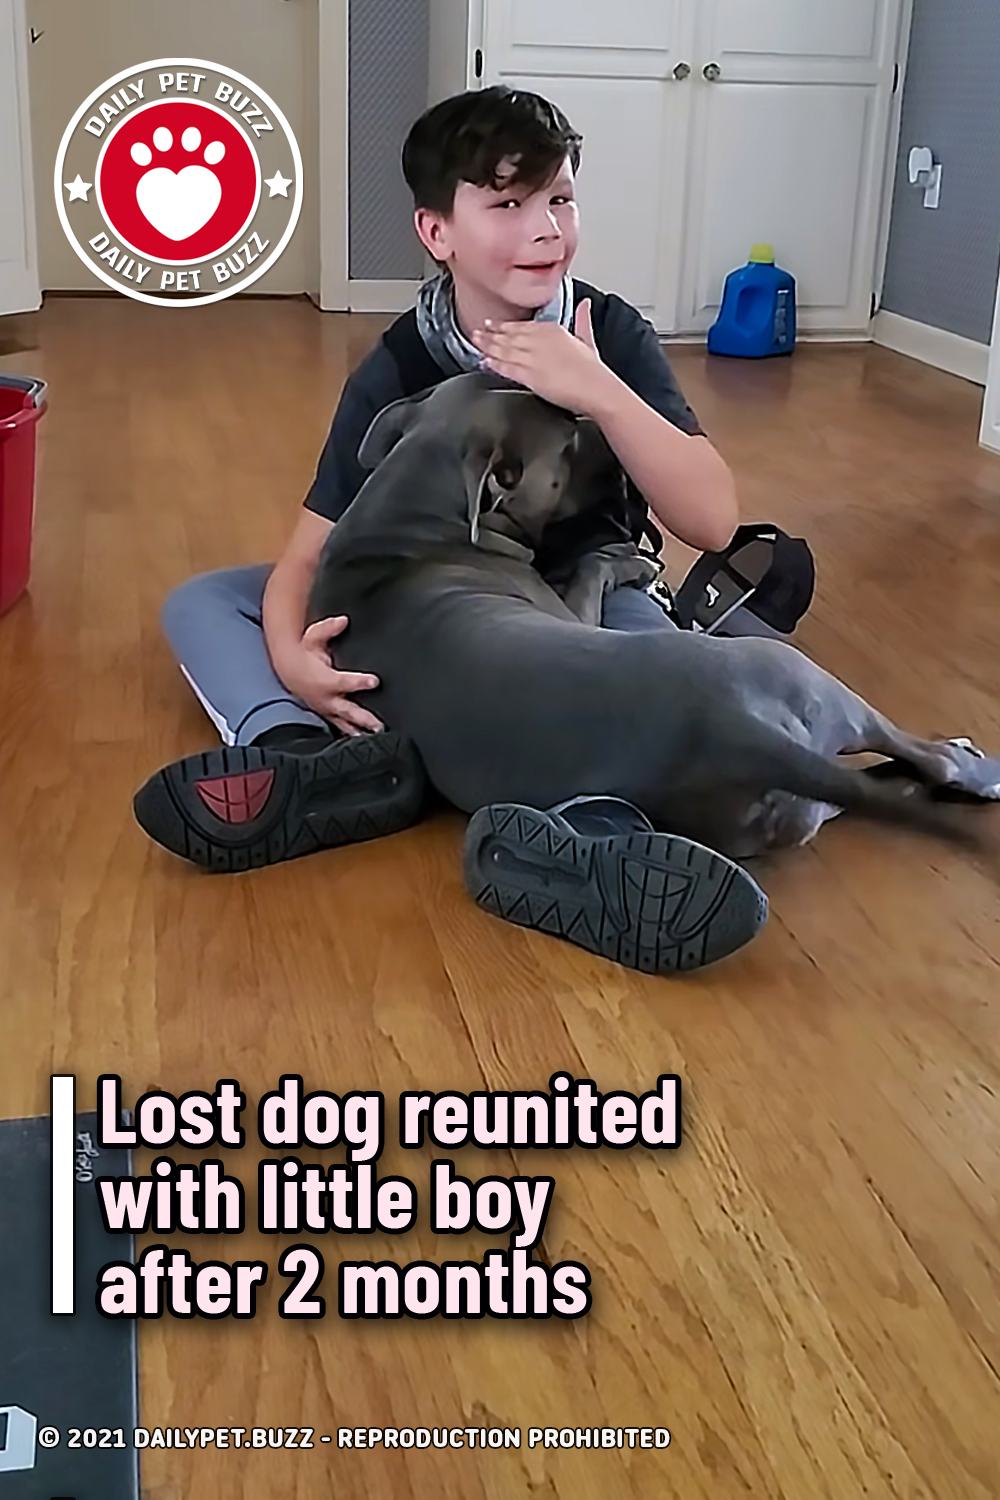 Lost dog reunited with little boy after 2 months